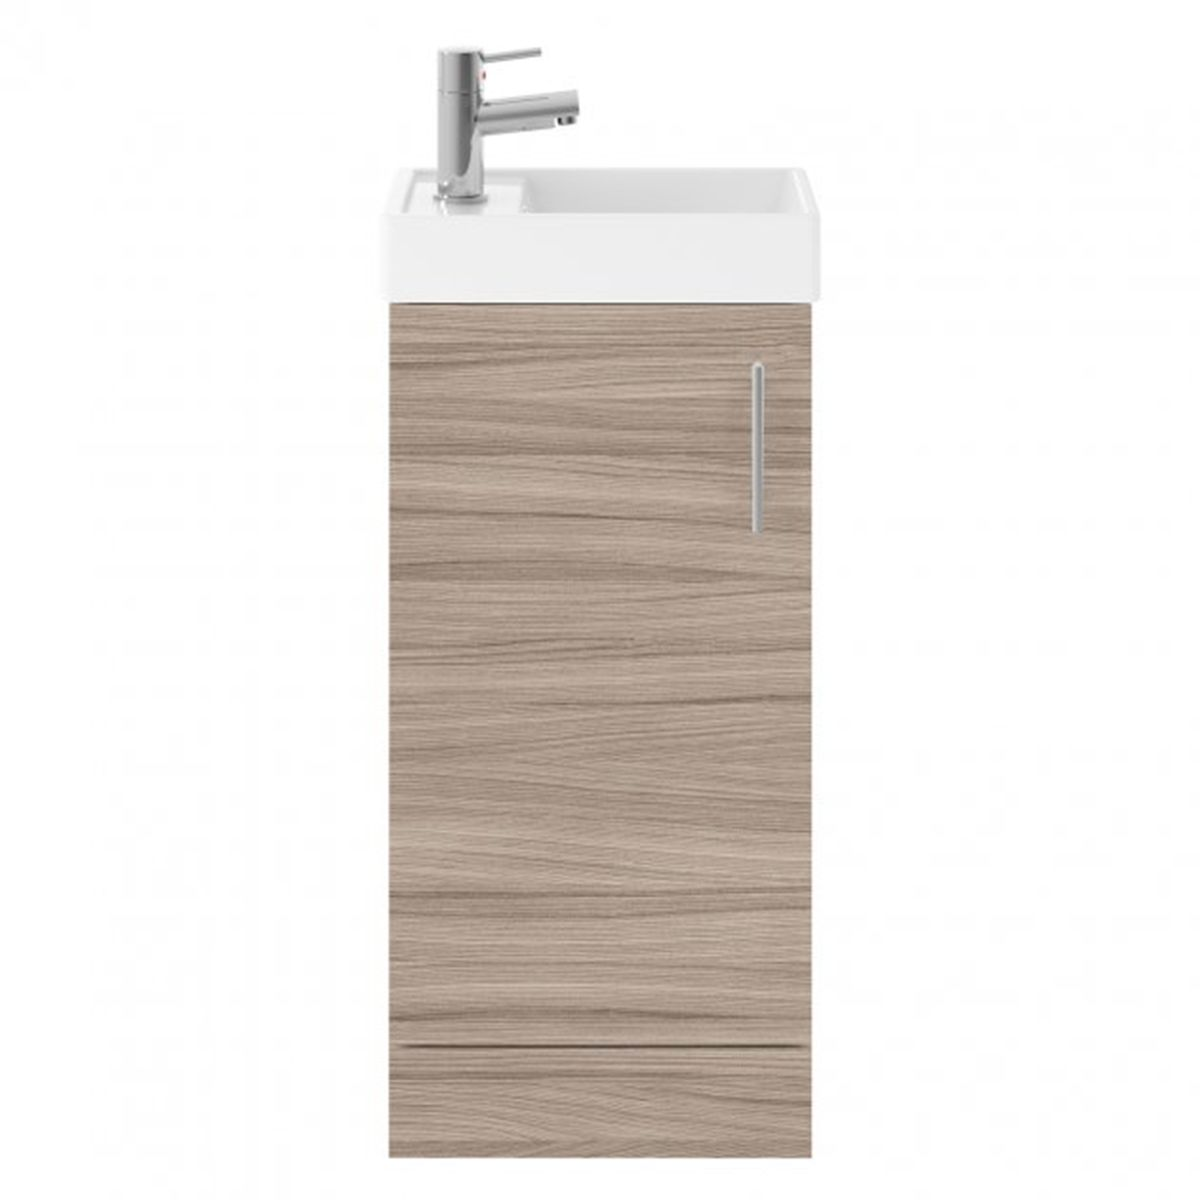 Nuie Vault Driftwood Floor Standing Single Door Vanity & Basin 400mm